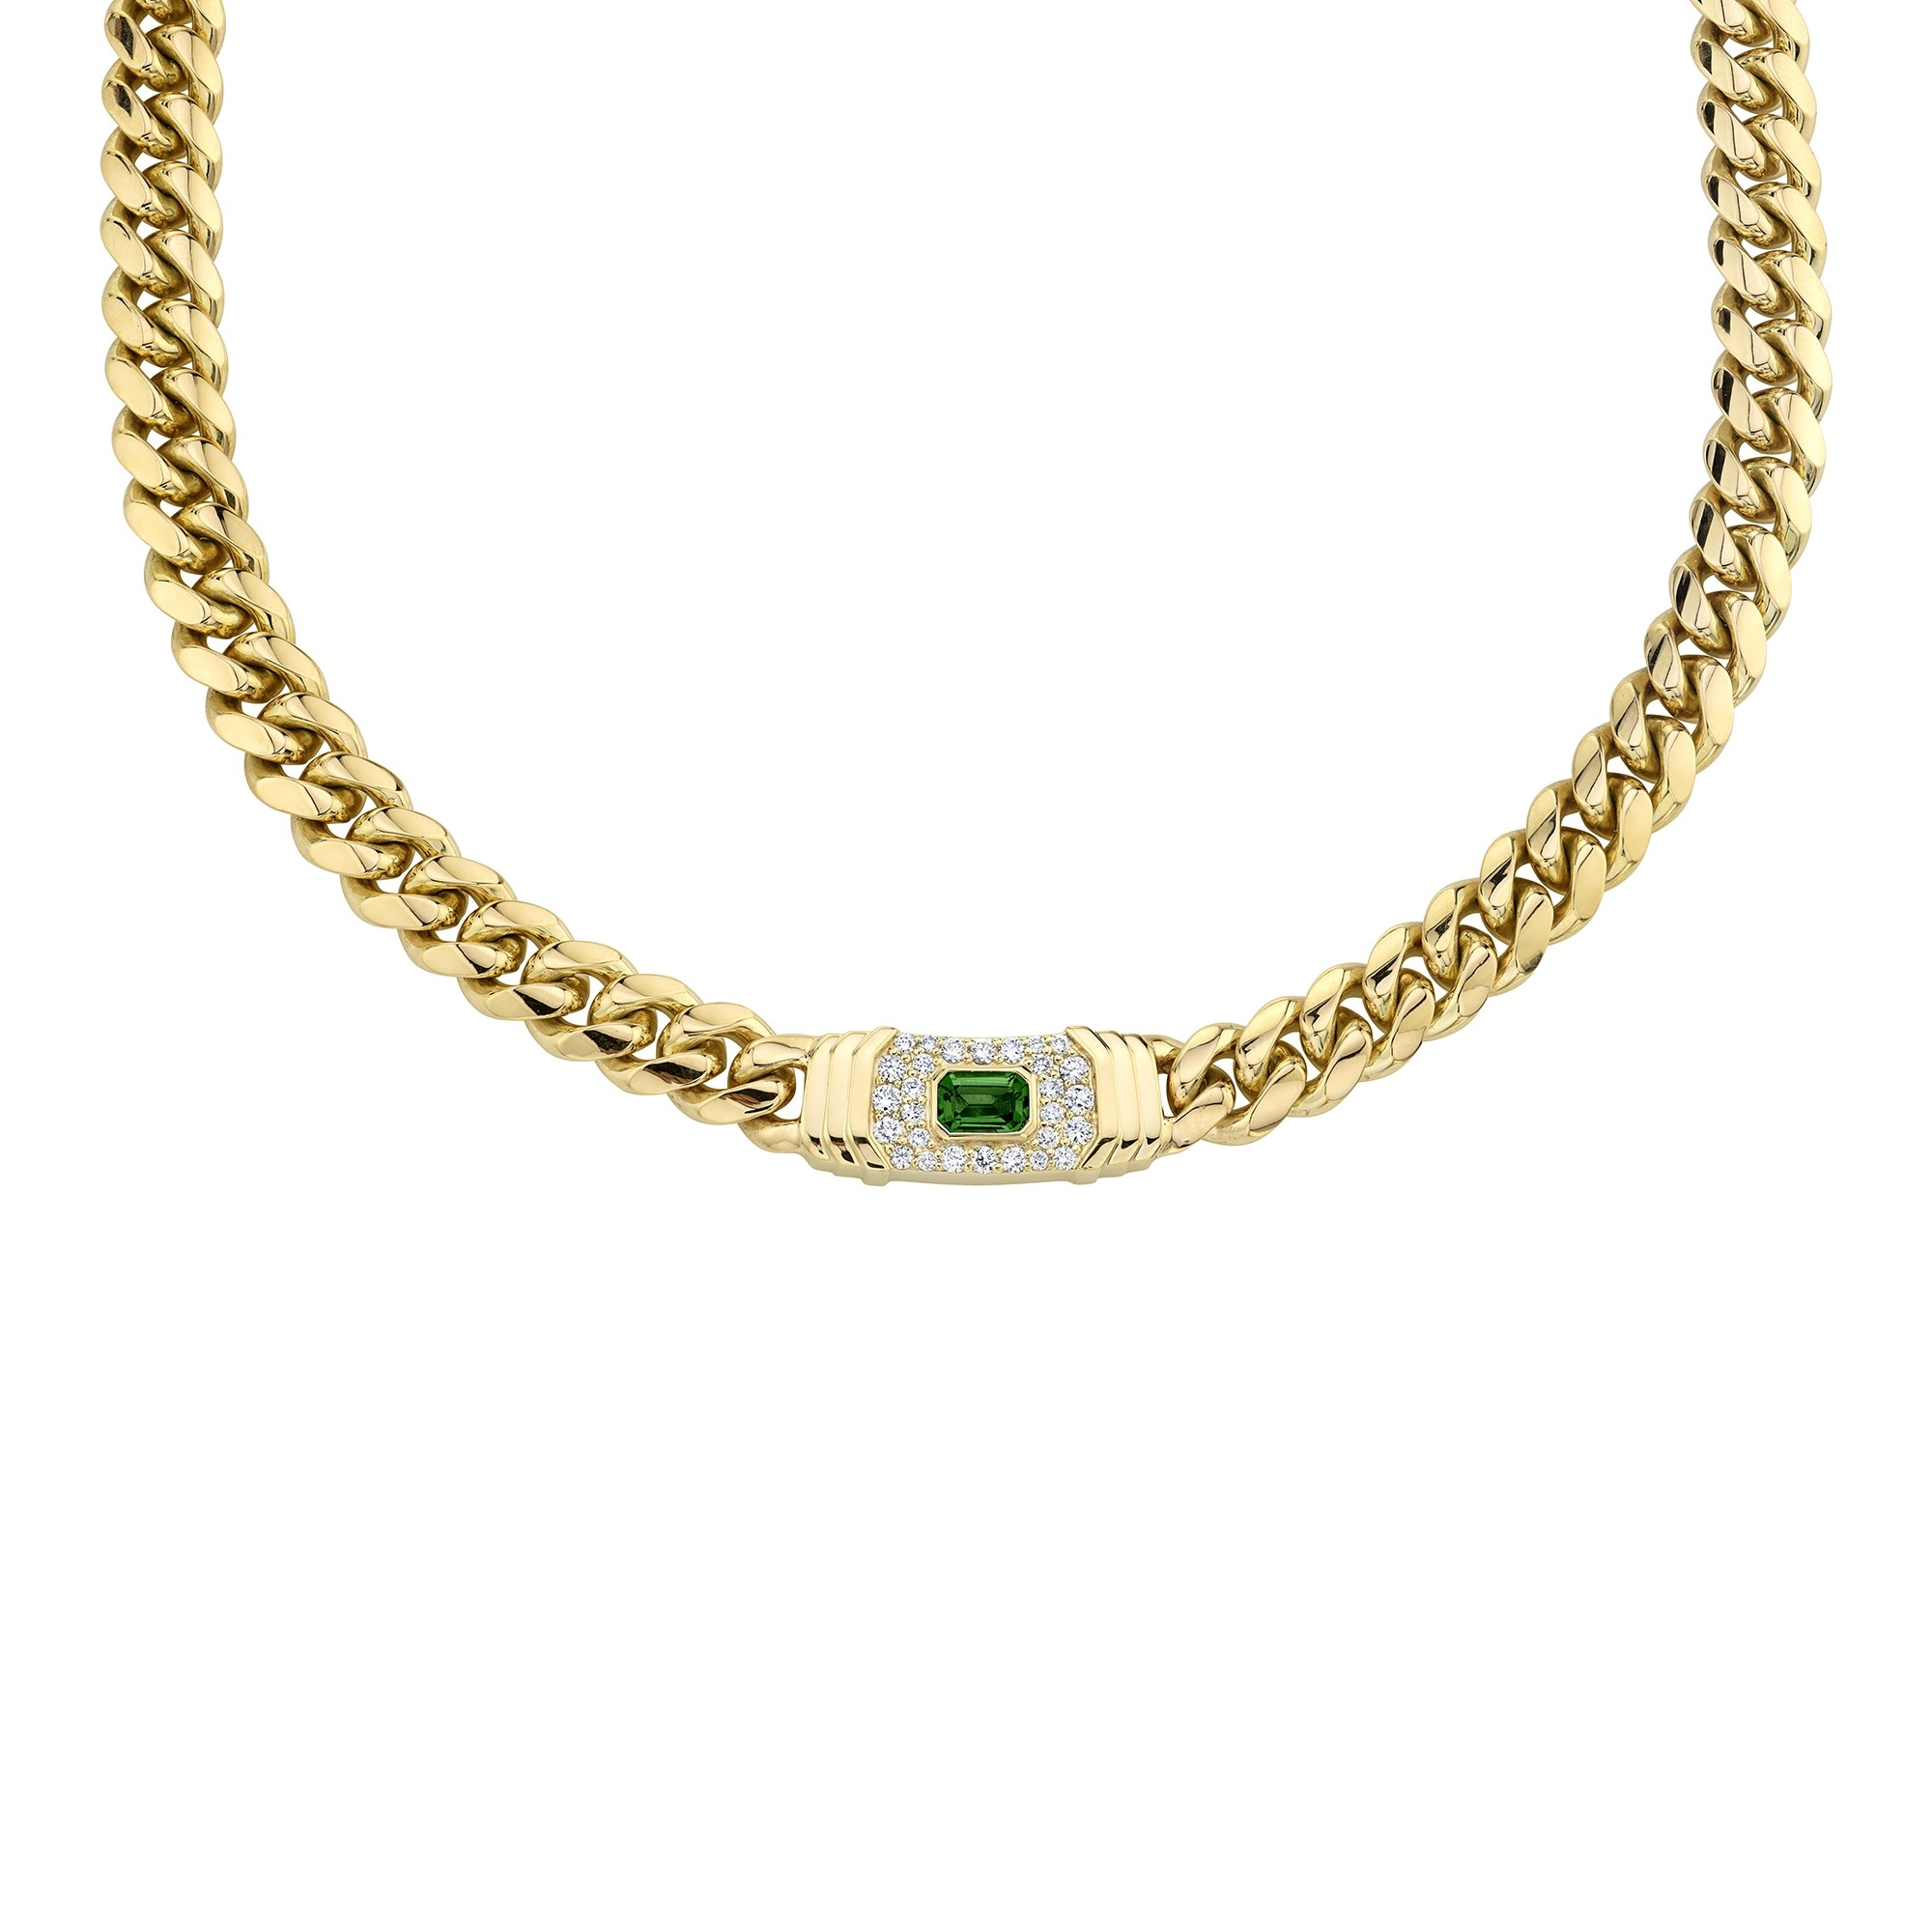 14k Yellow Gold Diamond Green Tourmaline Miami Cuban Link Necklace